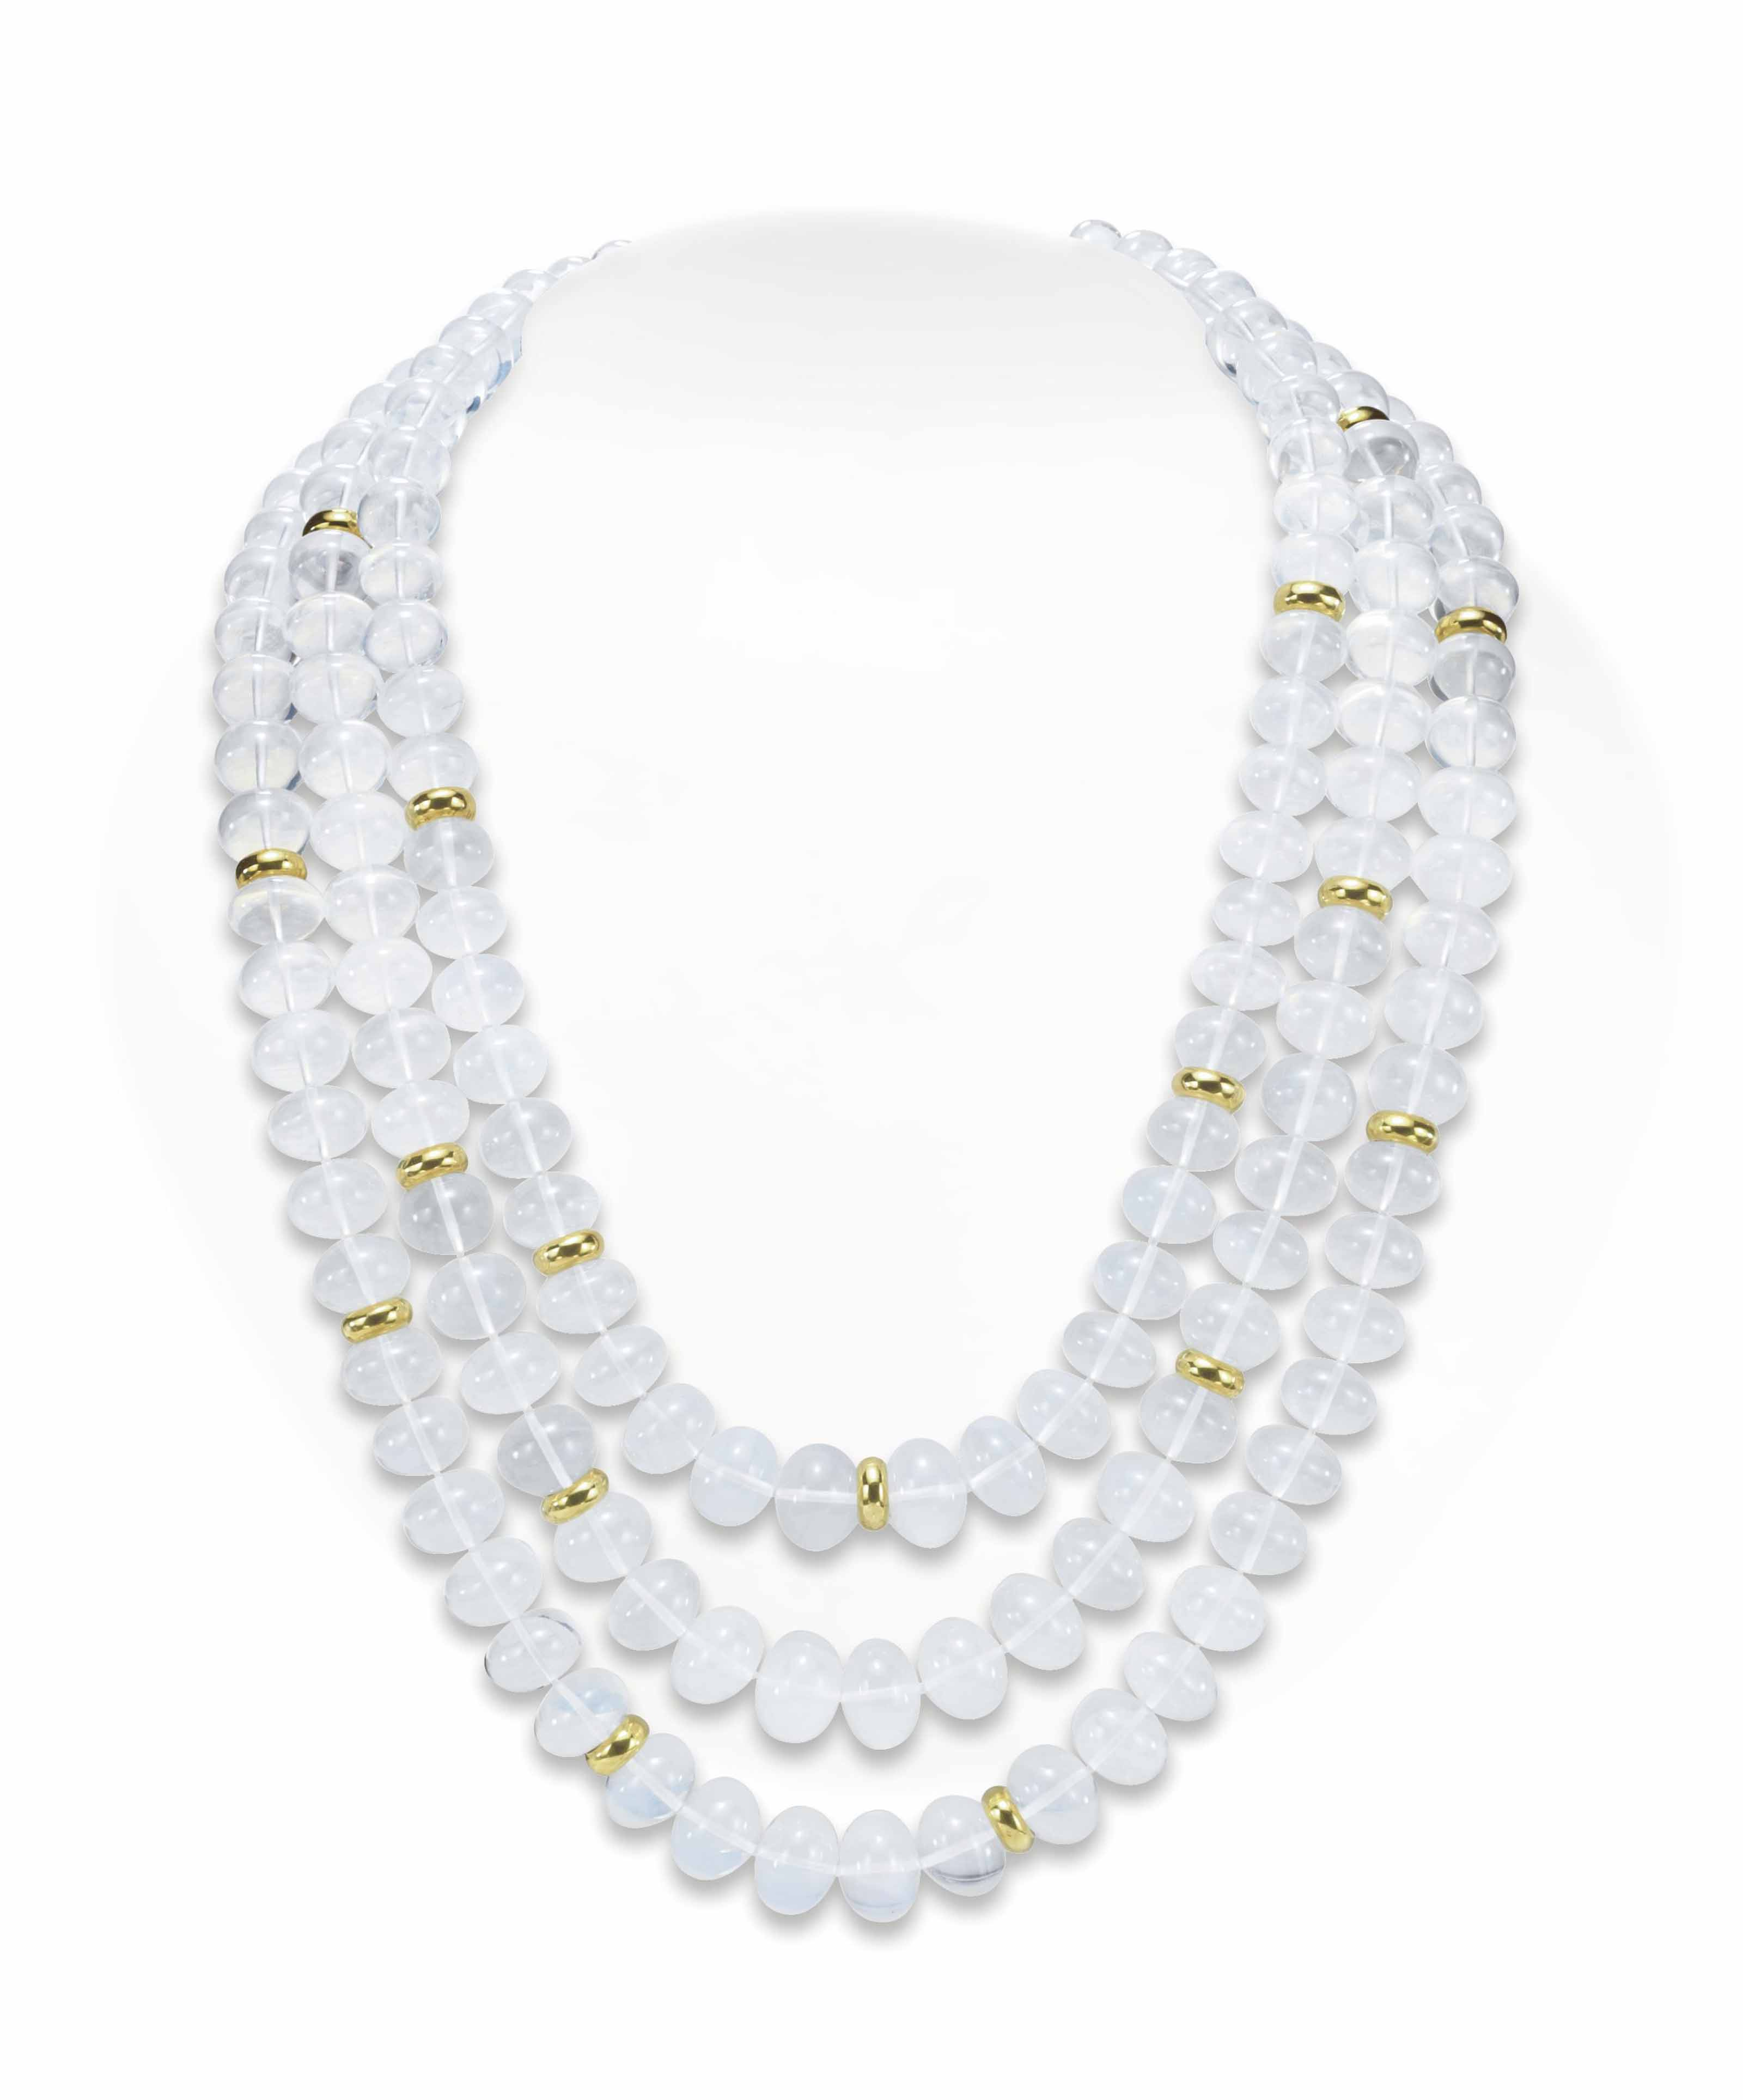 A MOON QUARTZ BEAD AND GOLD NECKLACE, BY HENRY DUNAY